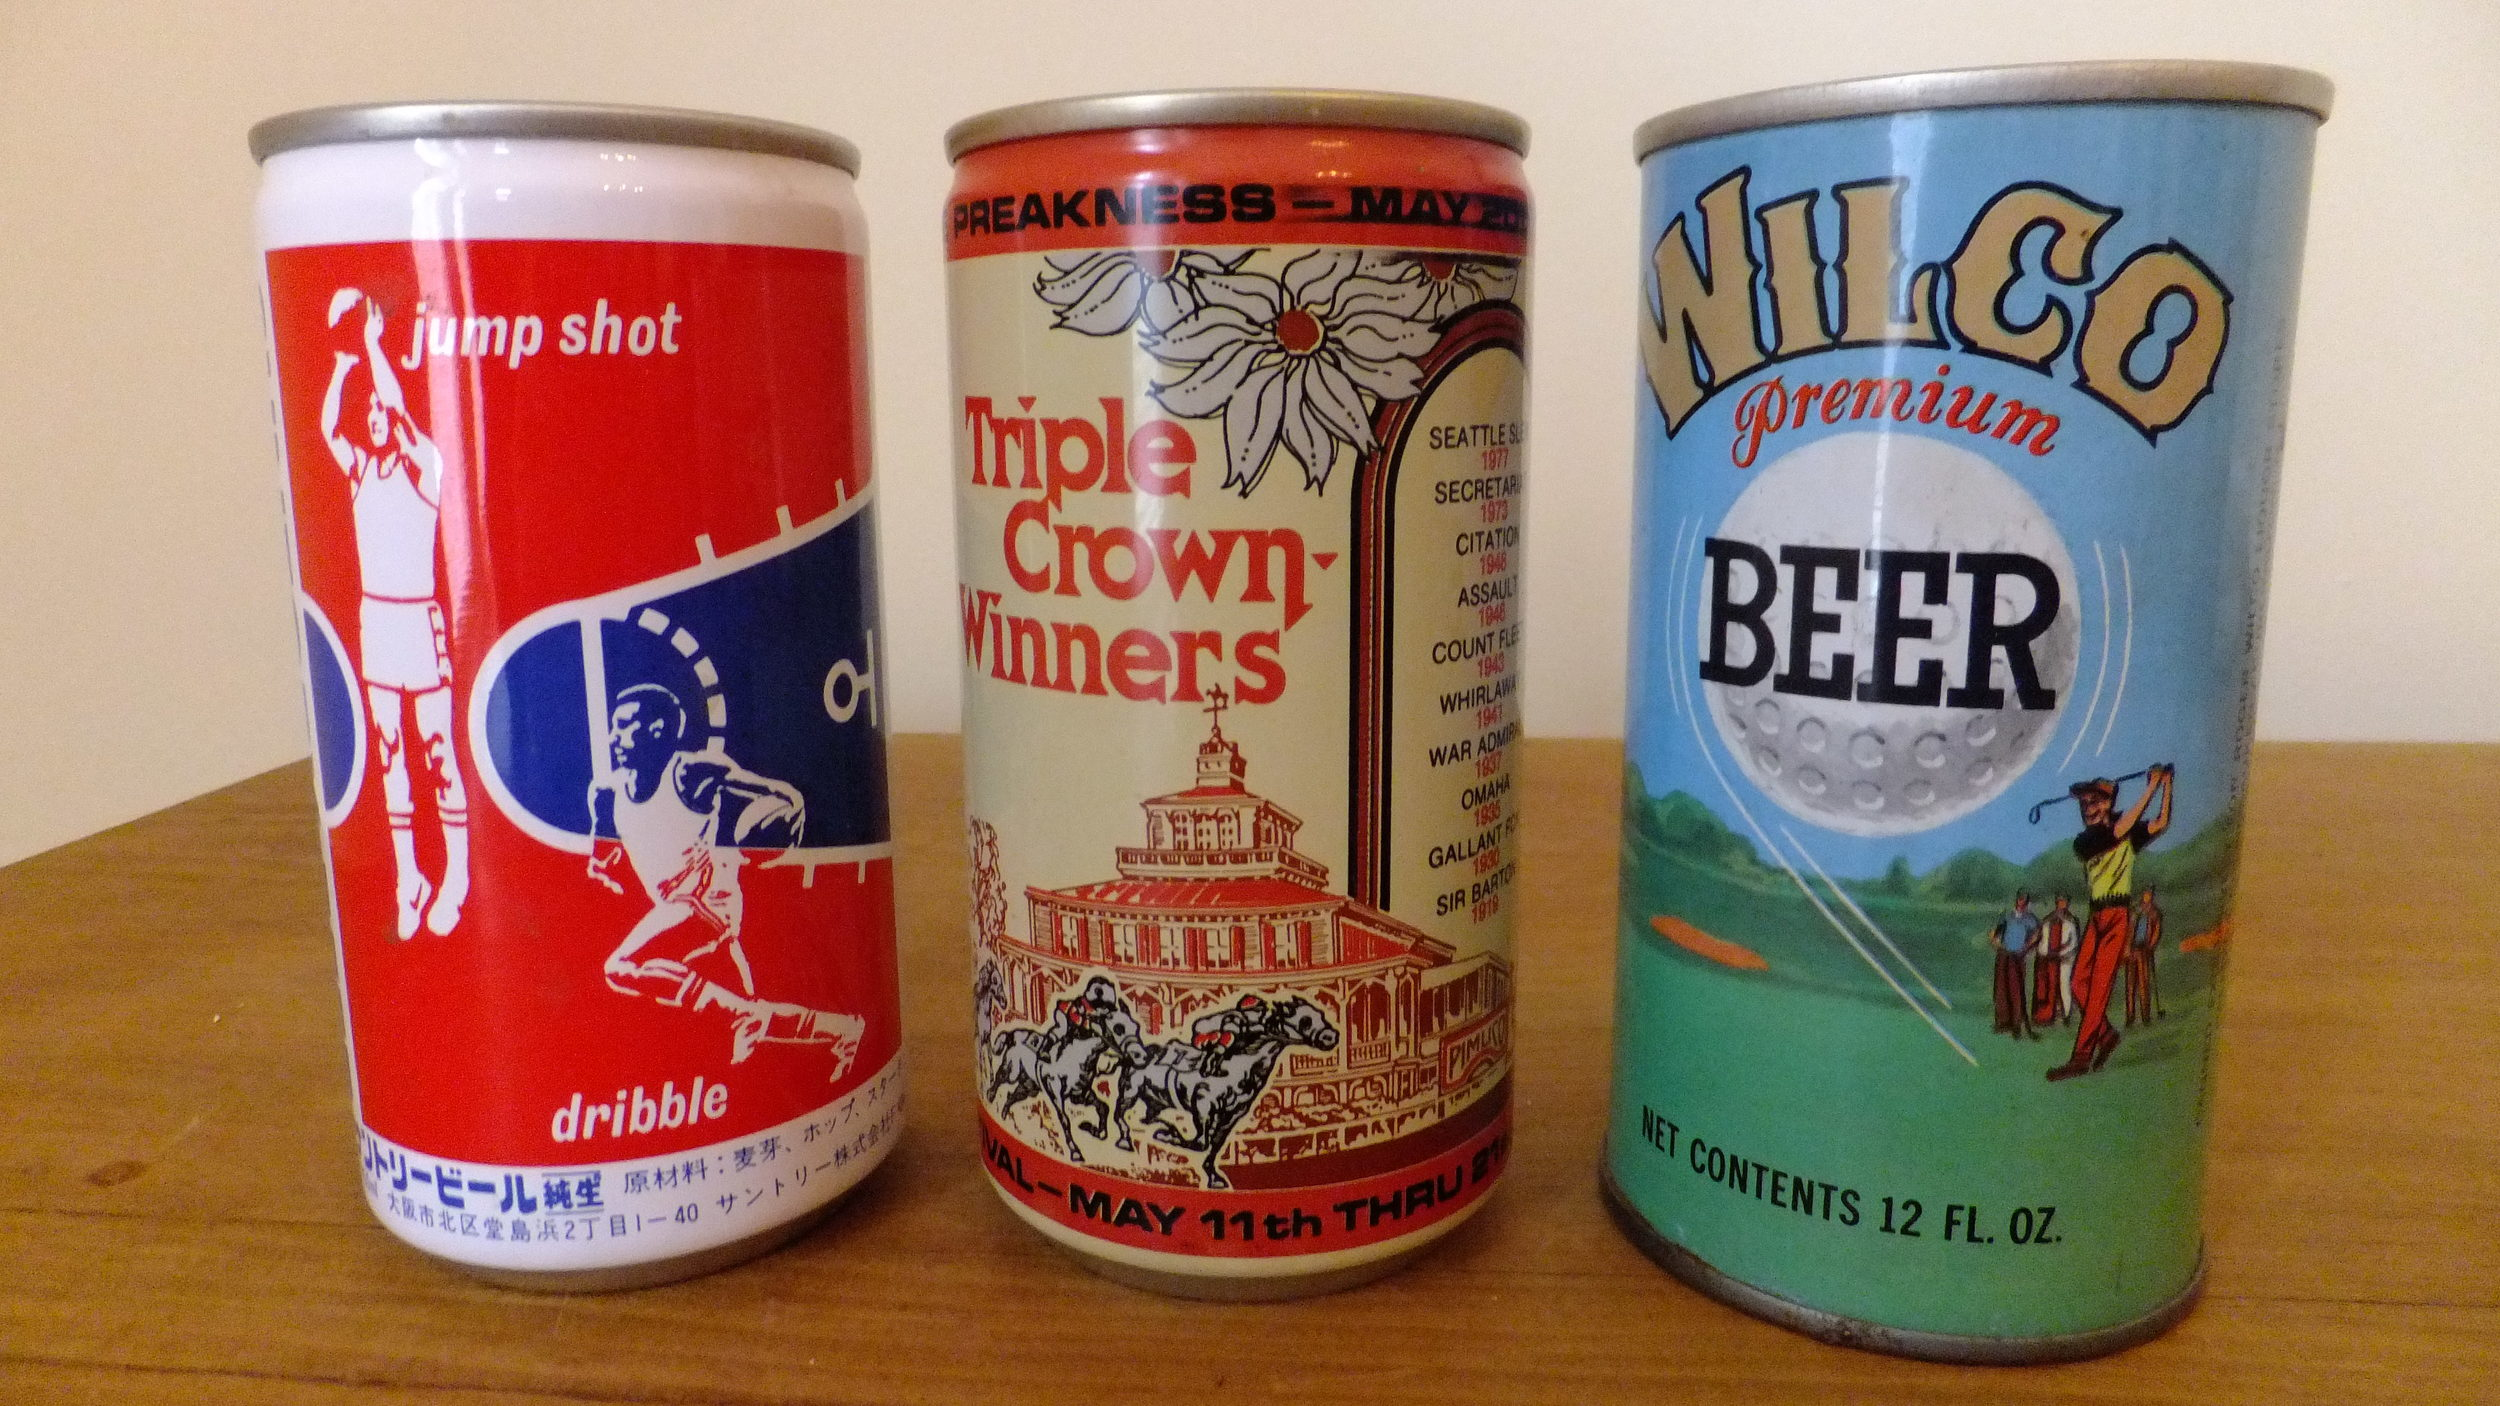 Basketball (Suntory Beer, Japan), 1978 Preakness Horse Race (Carling Breweries, Baltimore, Maryland), Wilco (Colonial Brewing, New Jersey)